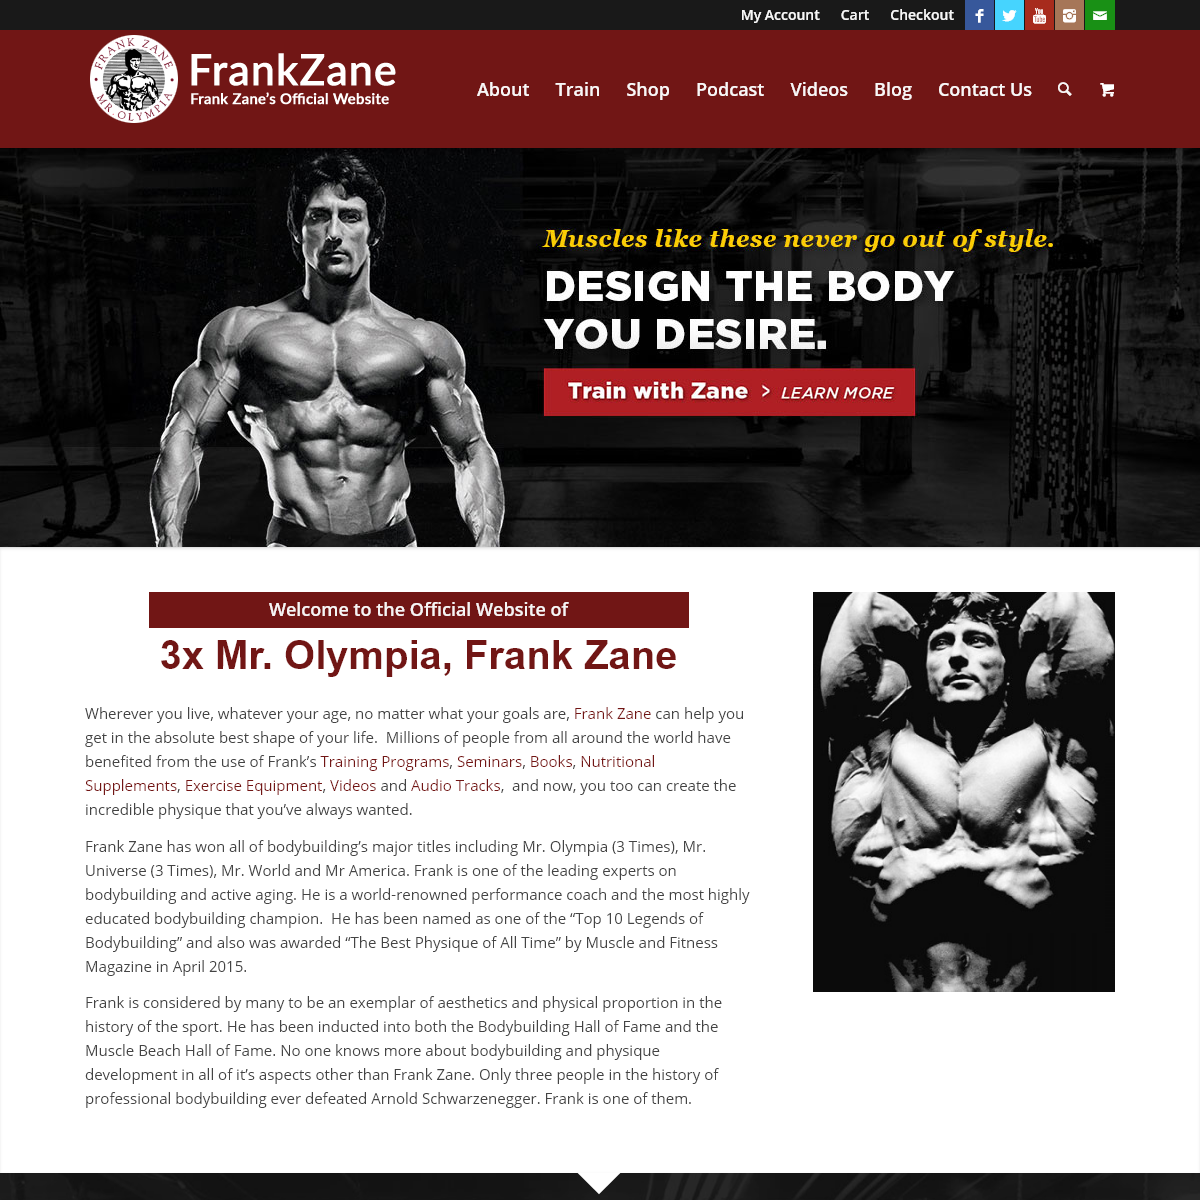 The Official Website of Frank Zane - 3x Mr. Olympia